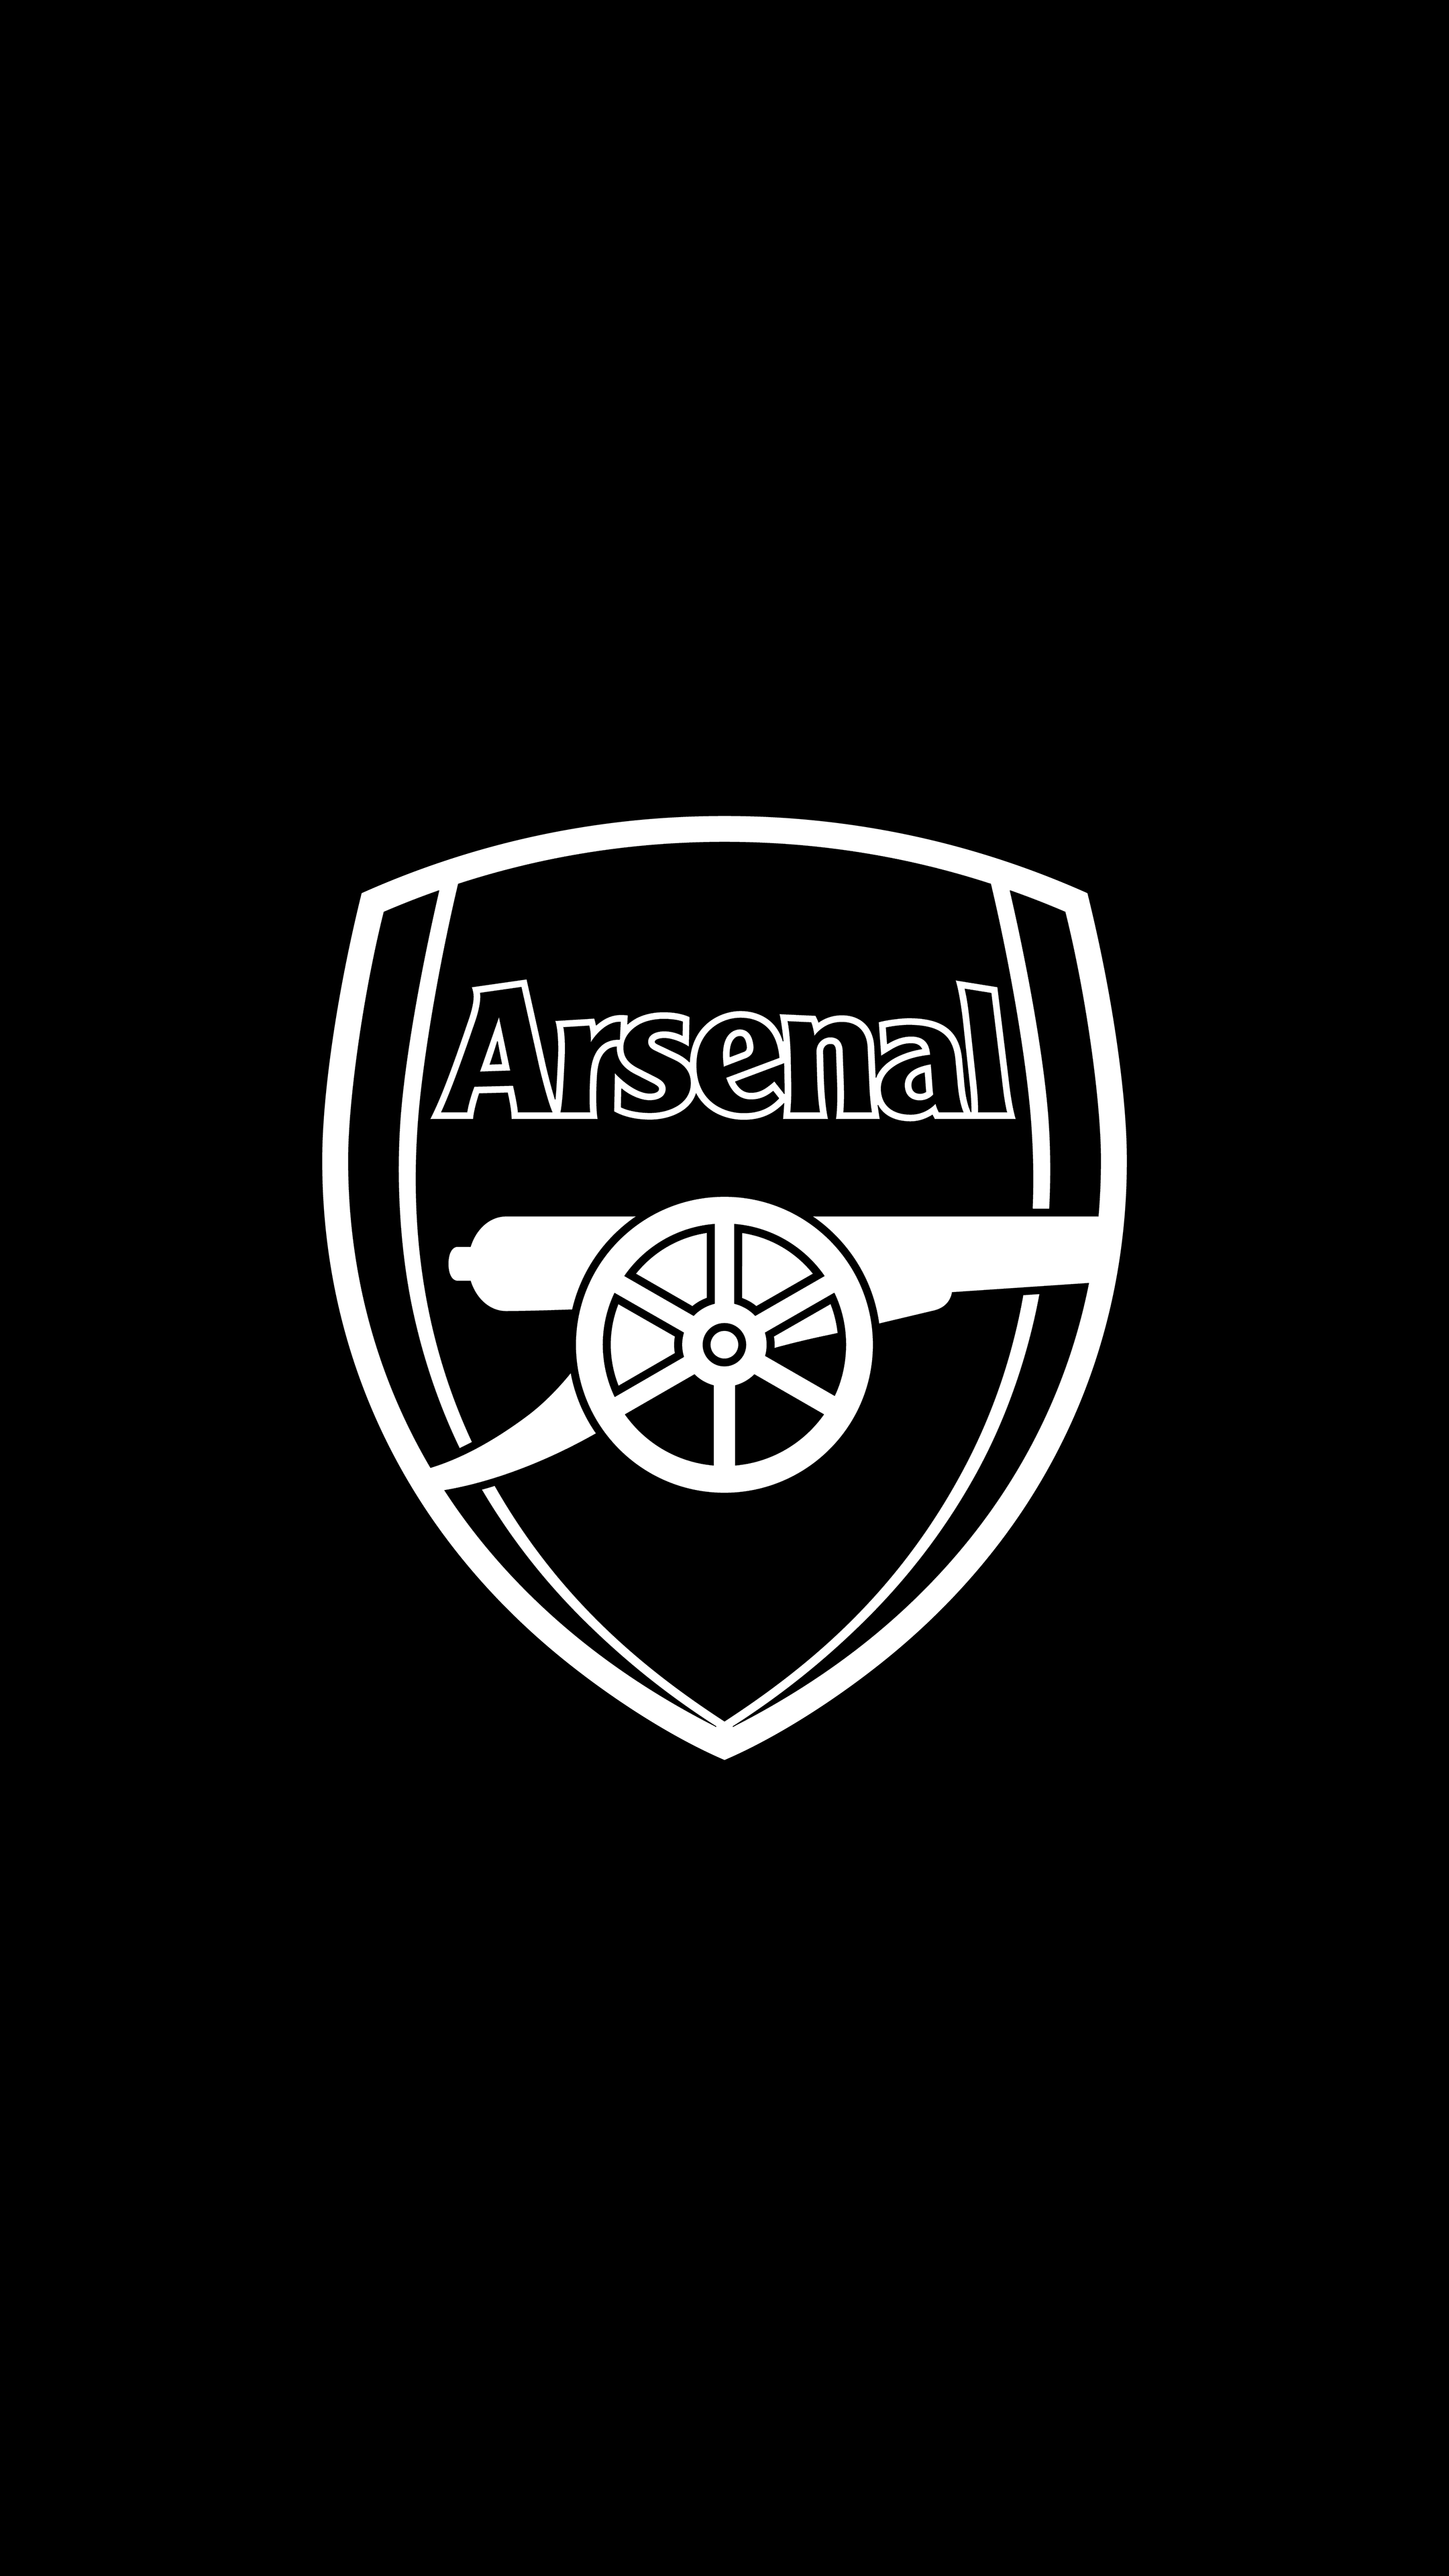 Arsenal B W 4k Wallpaper Sepak Bola Olahraga Wallpaper Ponsel